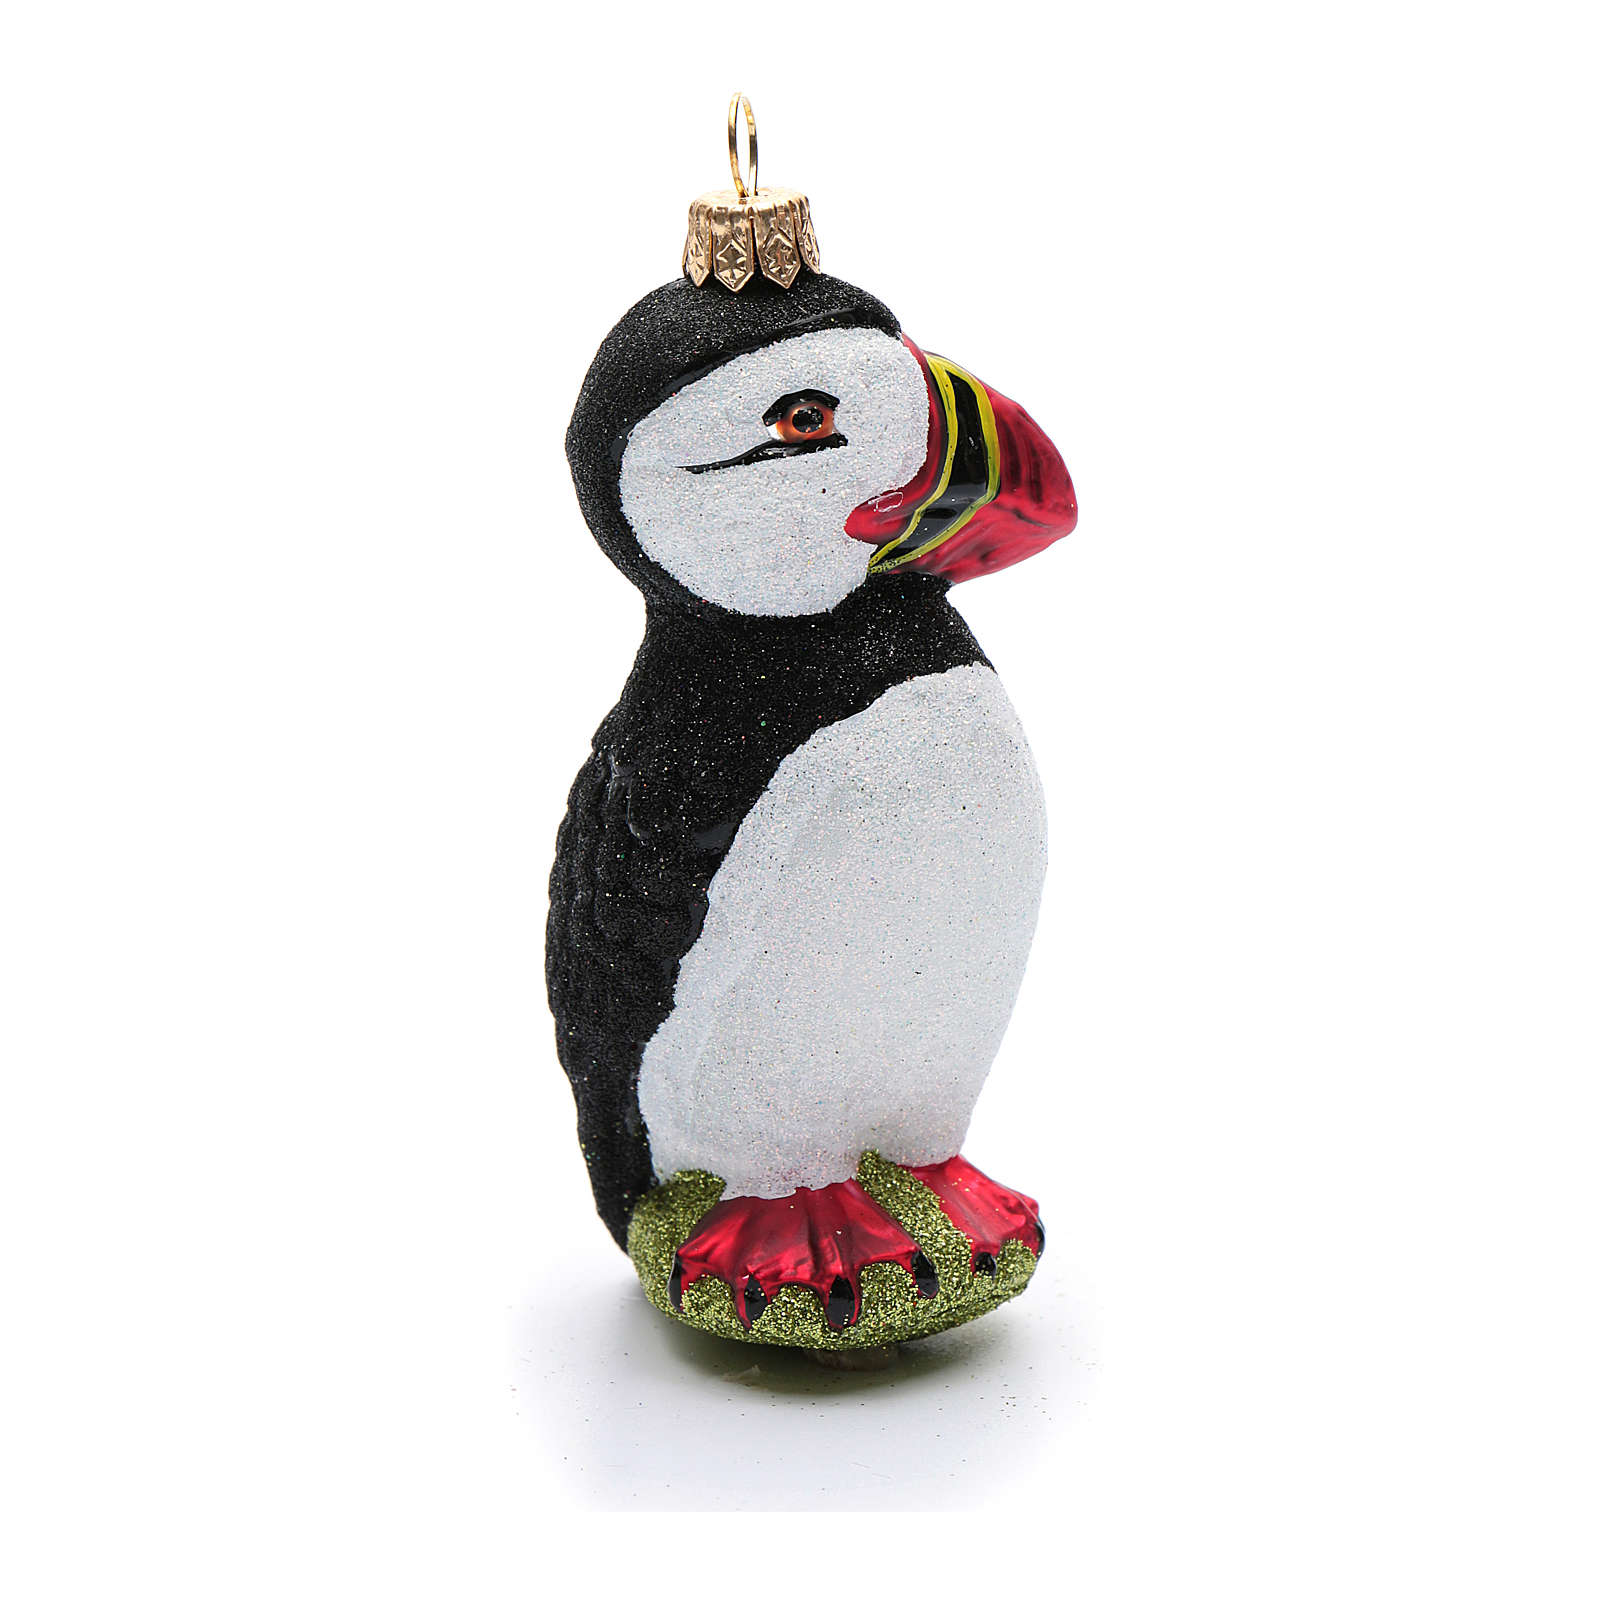 Blown glass Christmas ornament, arctic puffin 4